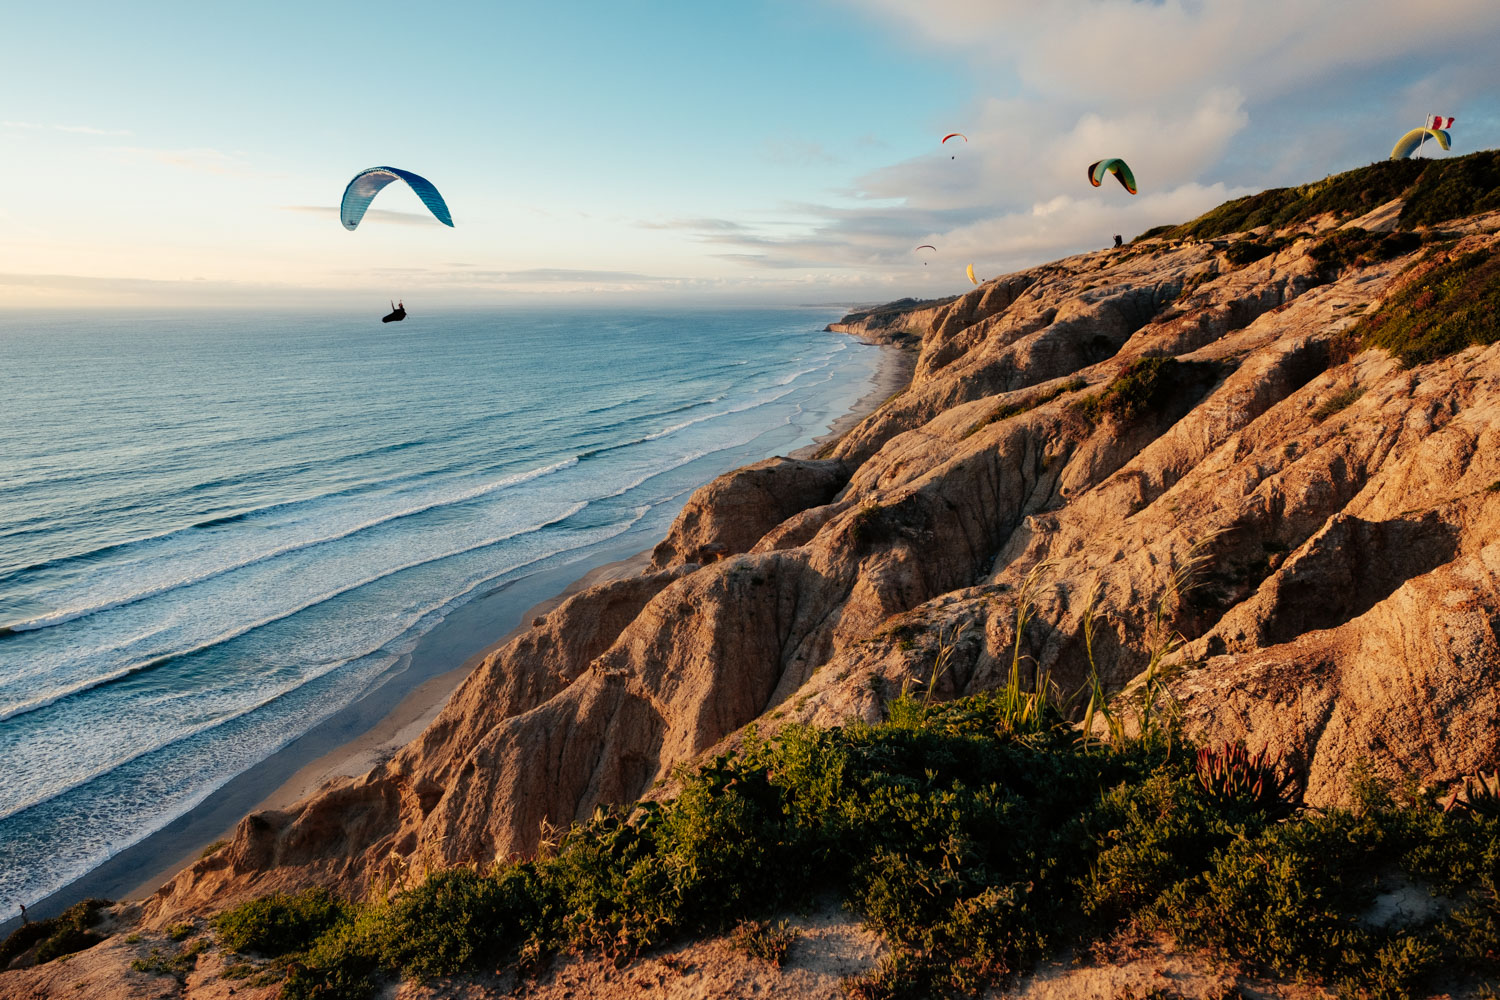 Paragliders flying above Torrey Pines State Reserve, San Diego, CA.